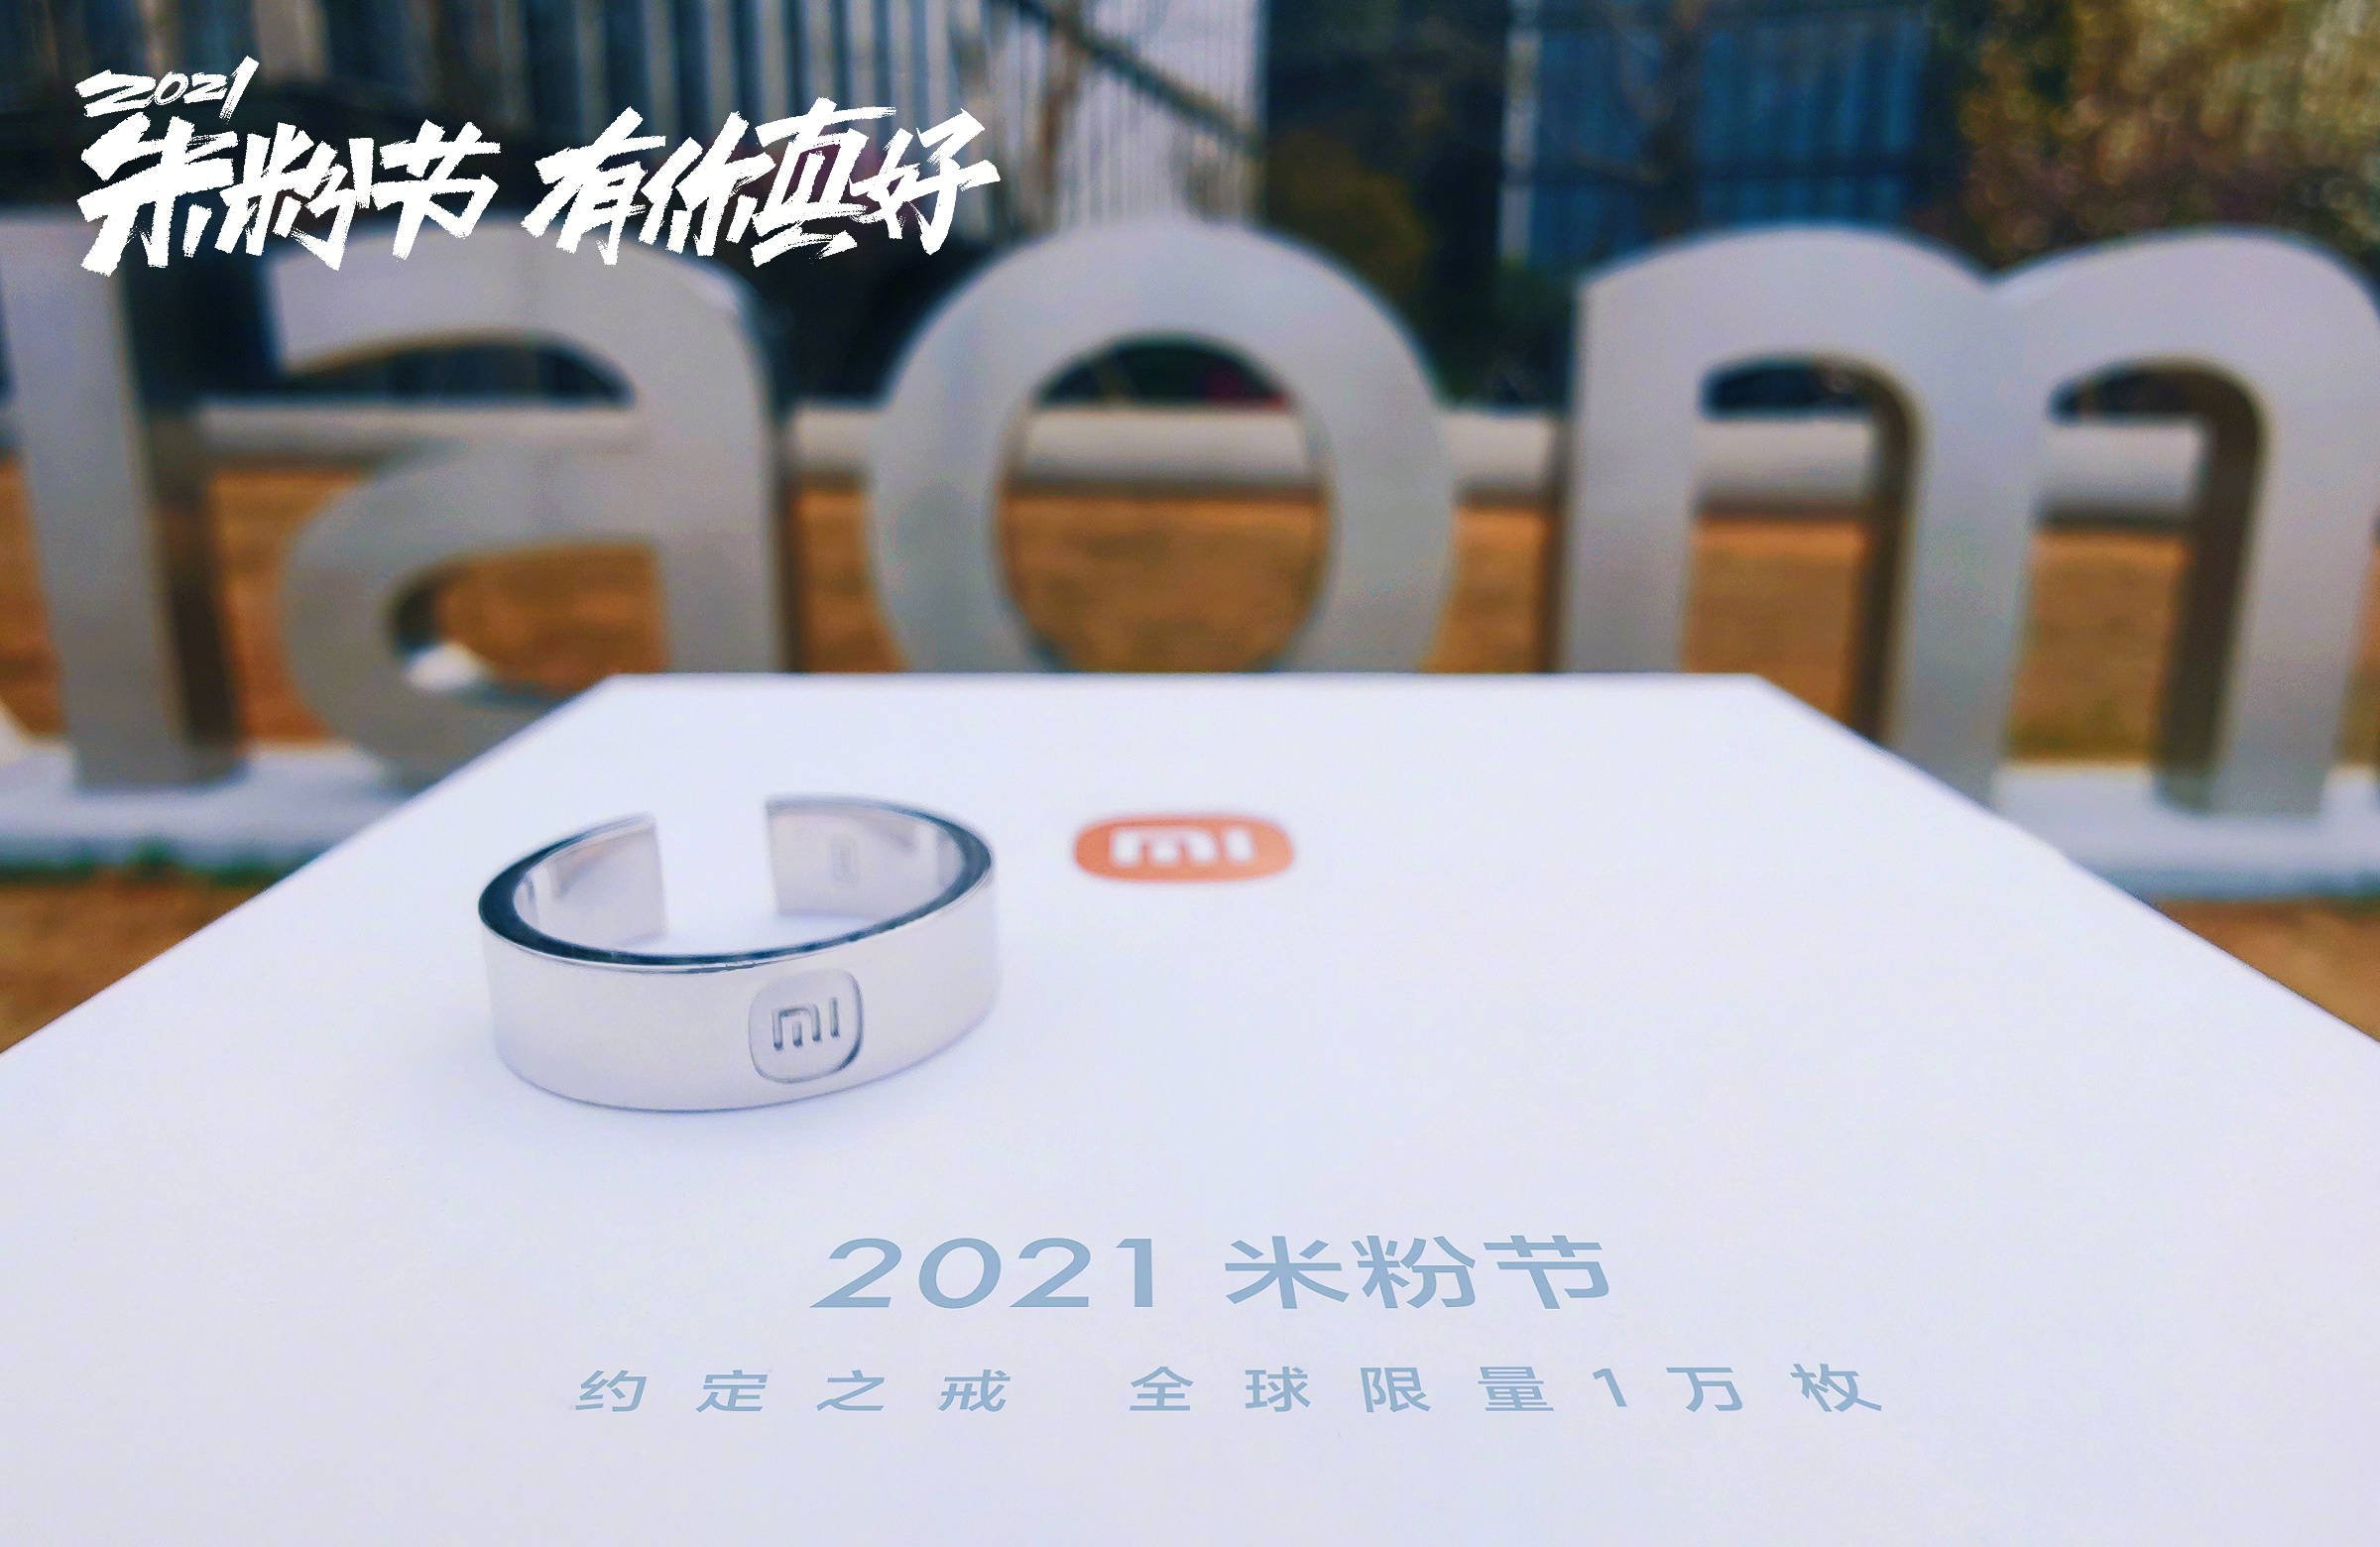 This is the limited edition ring that Xiaomi has launched at the Mi Fan Festival 2021. News Xiaomi Addicts